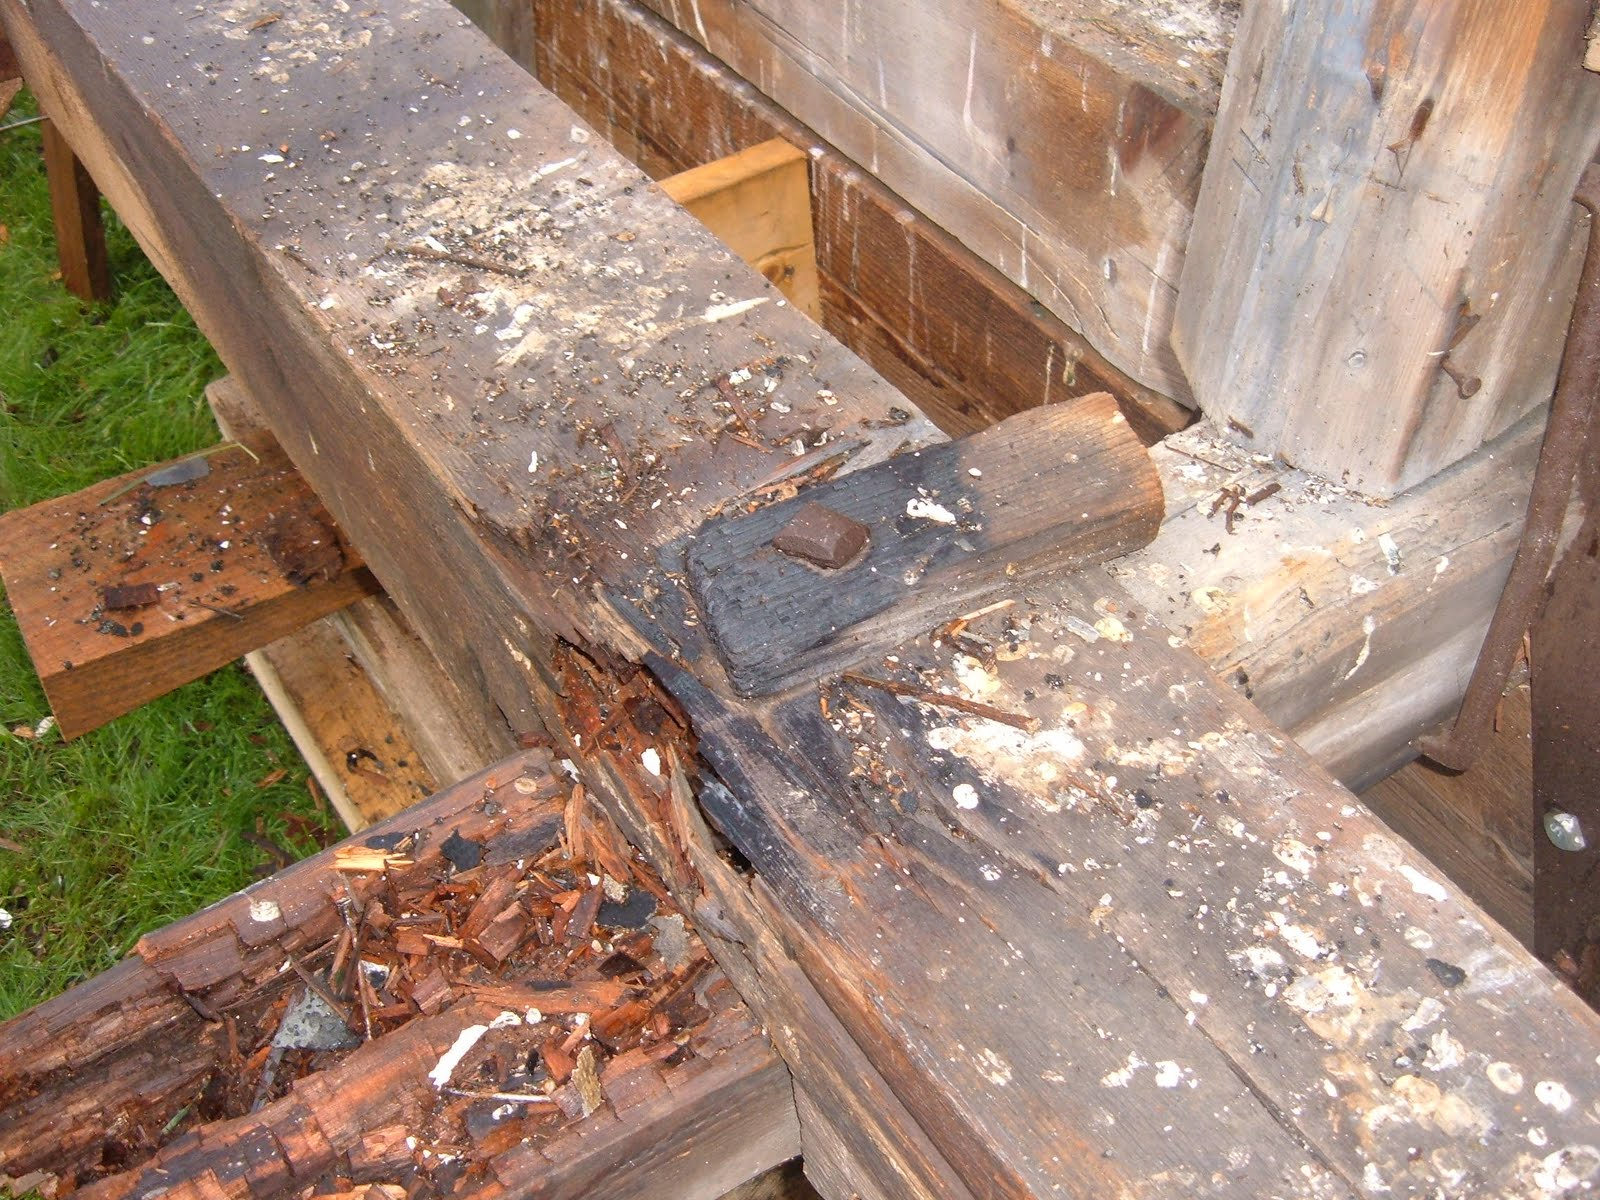 The timbers that had been added to the base of the pire had been sistered with timbers of equal size when the rubber membrane was added.  The new timbers were almost as rotten as the timbers of the original spire base.